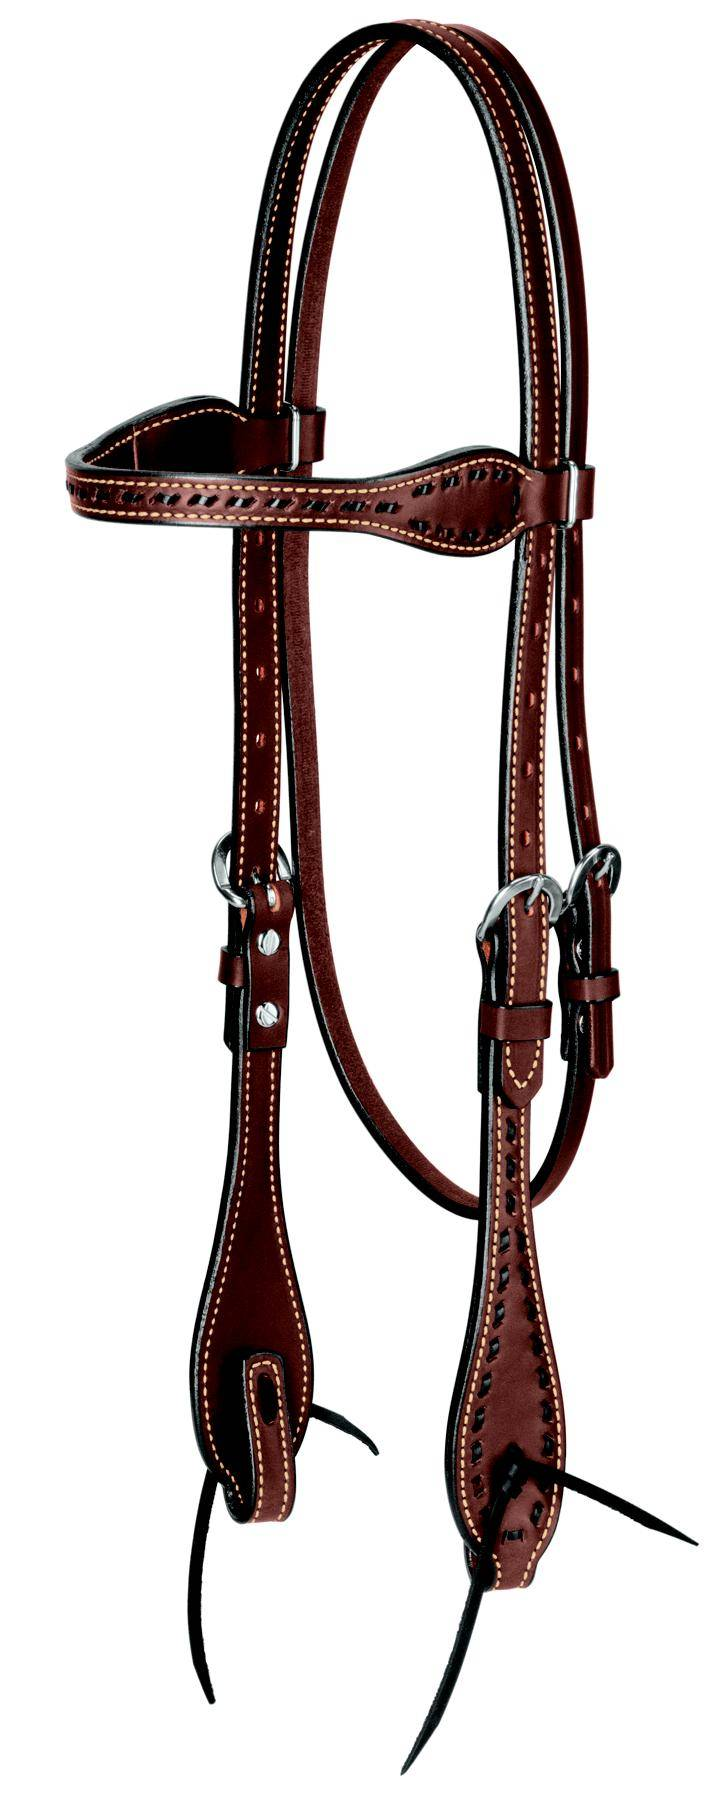 Weaver Leather Buckstitch Browband Headstall